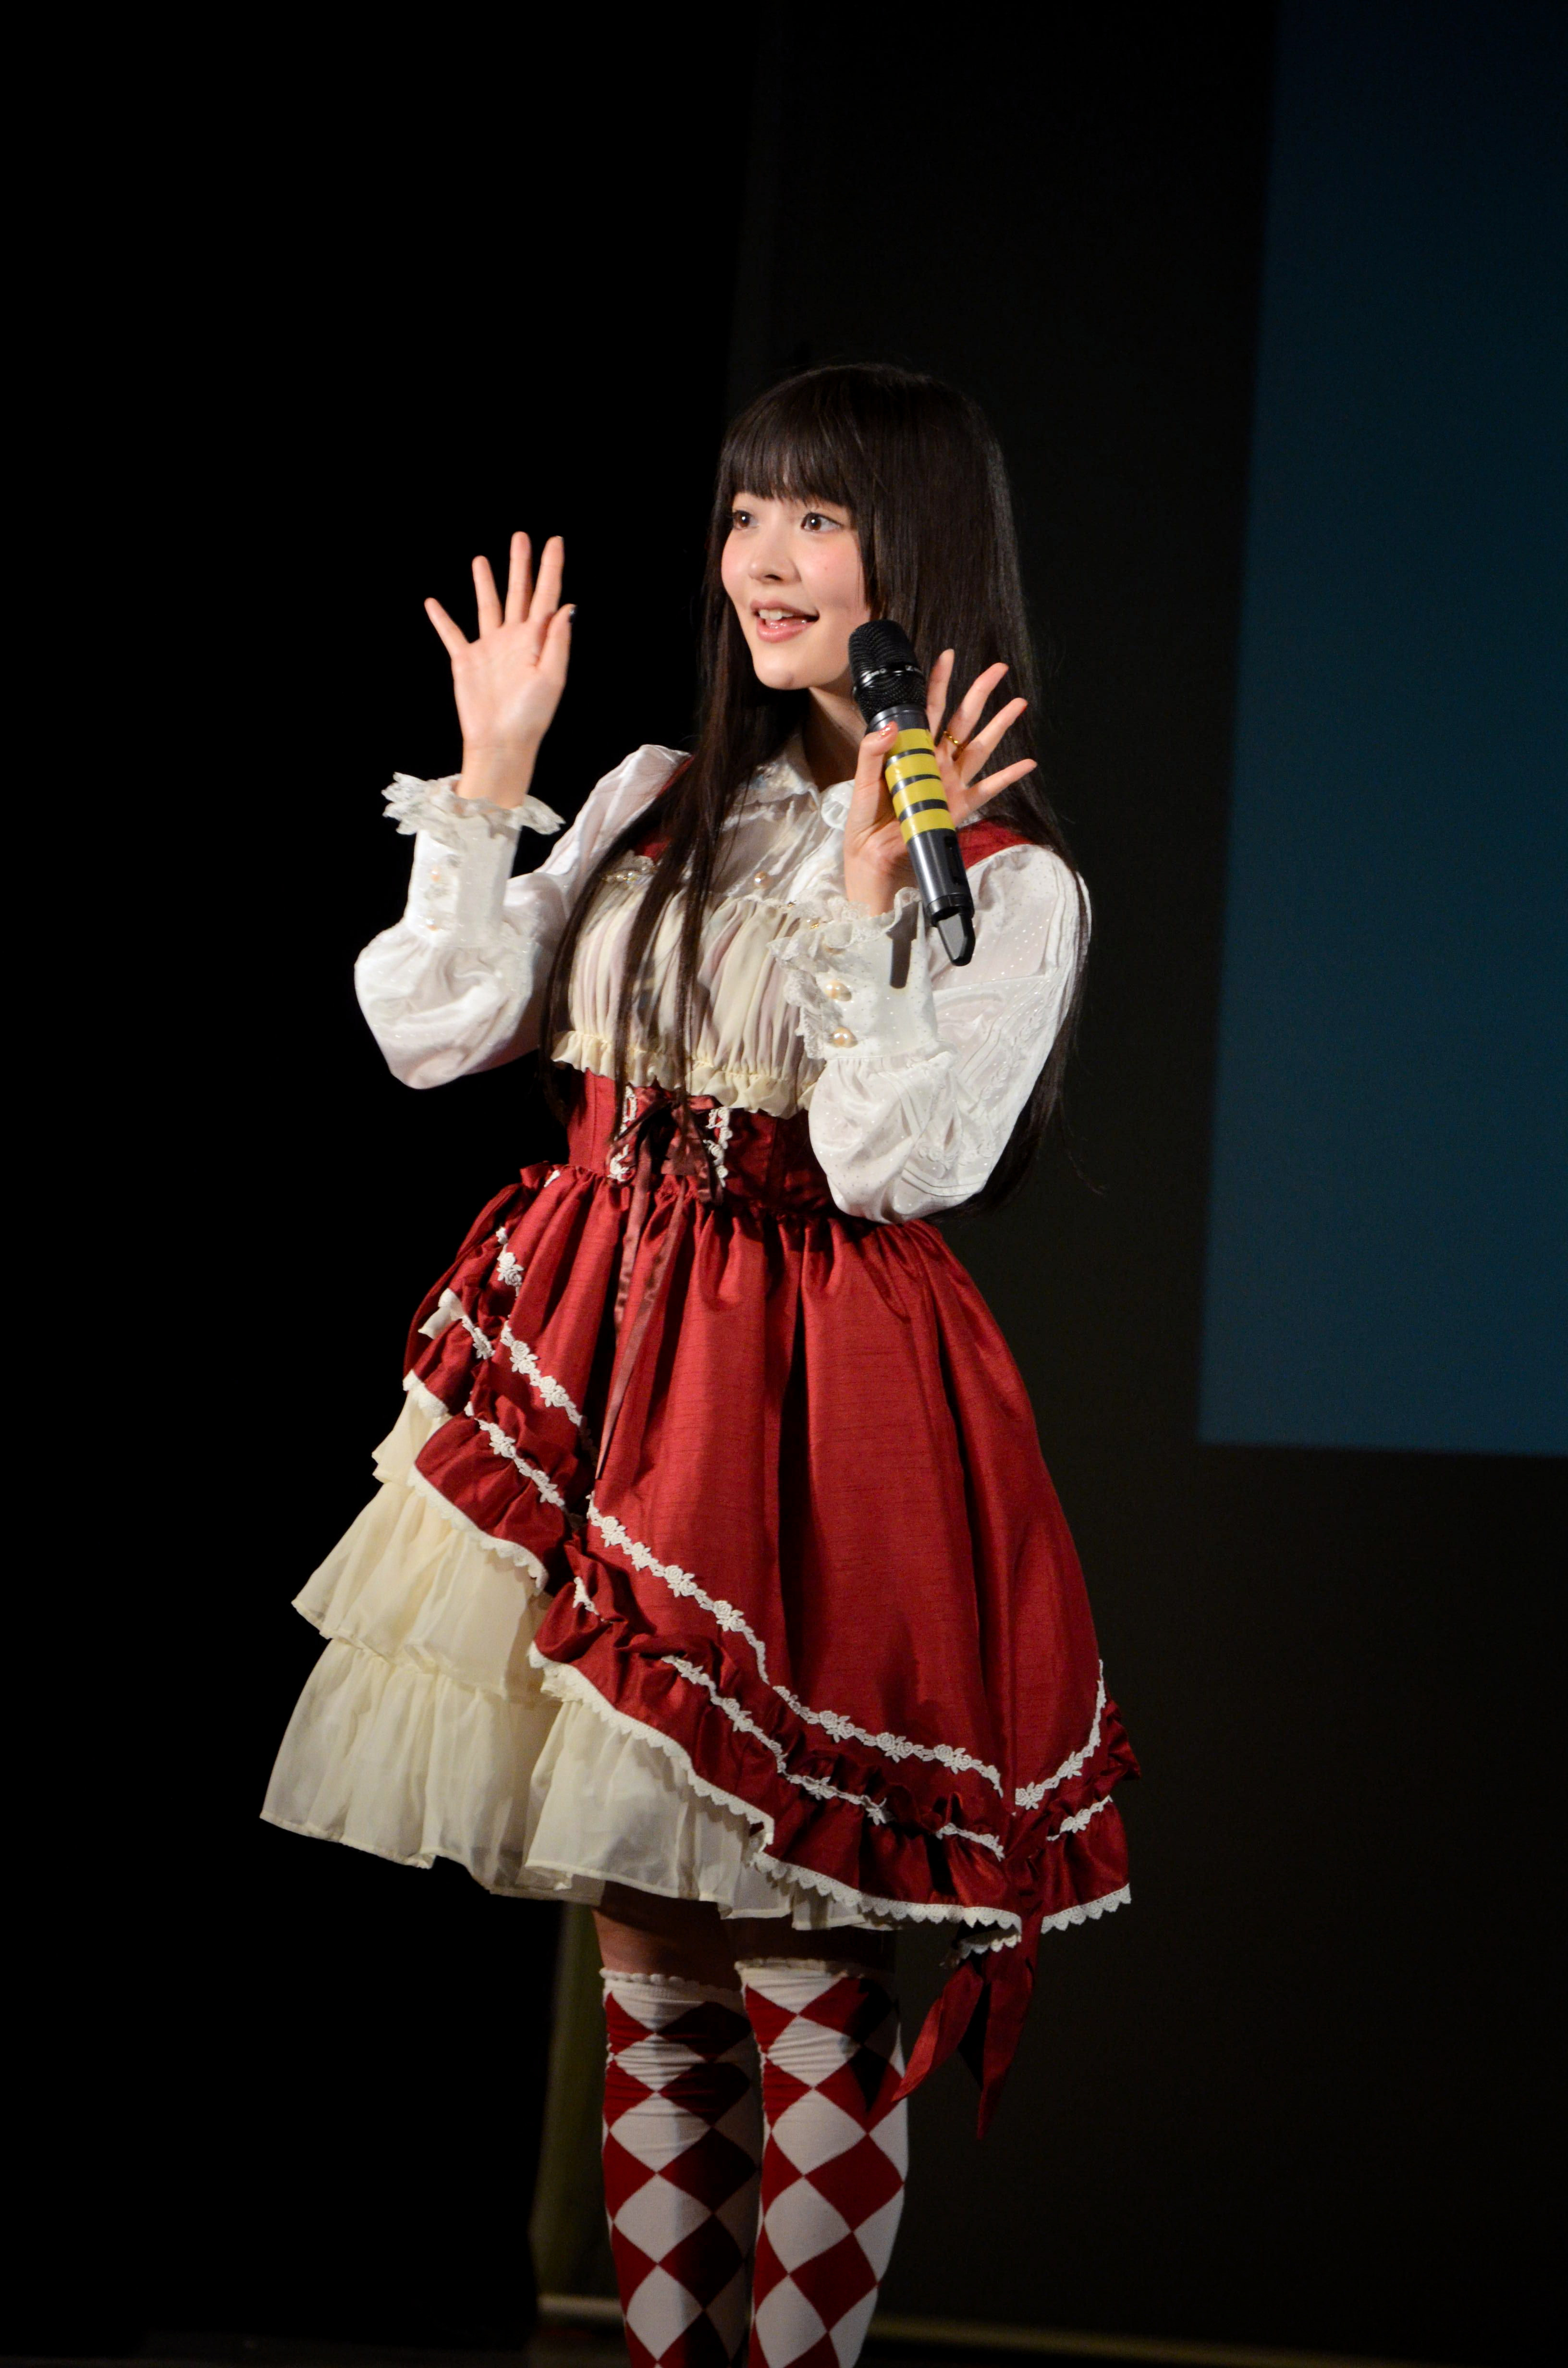 Sumire Uesaka at Anicon 20150704a.jpg